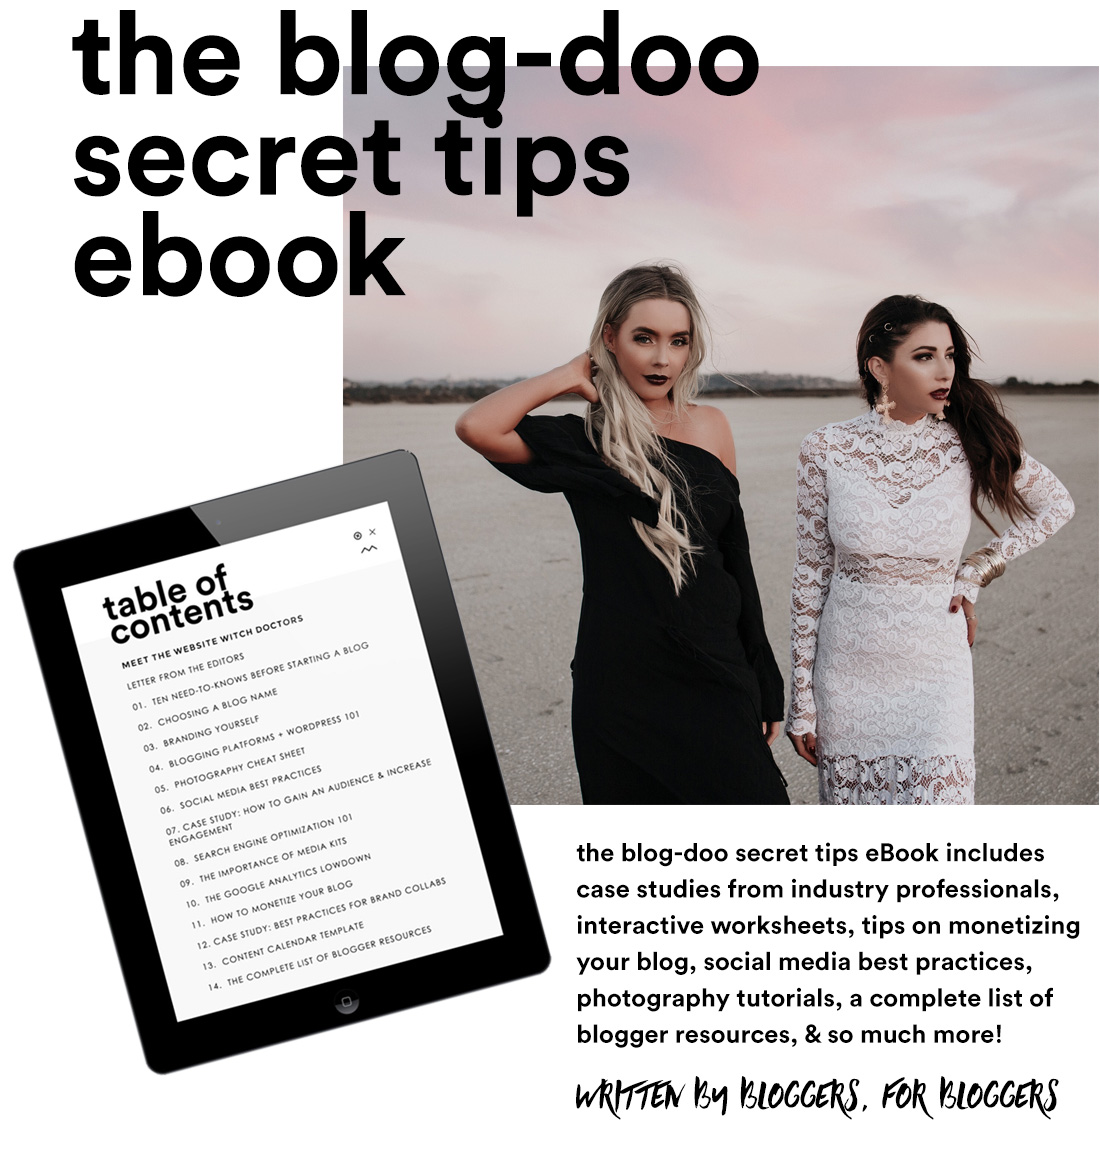 blogging branding tips secrets by tsc fashionlush